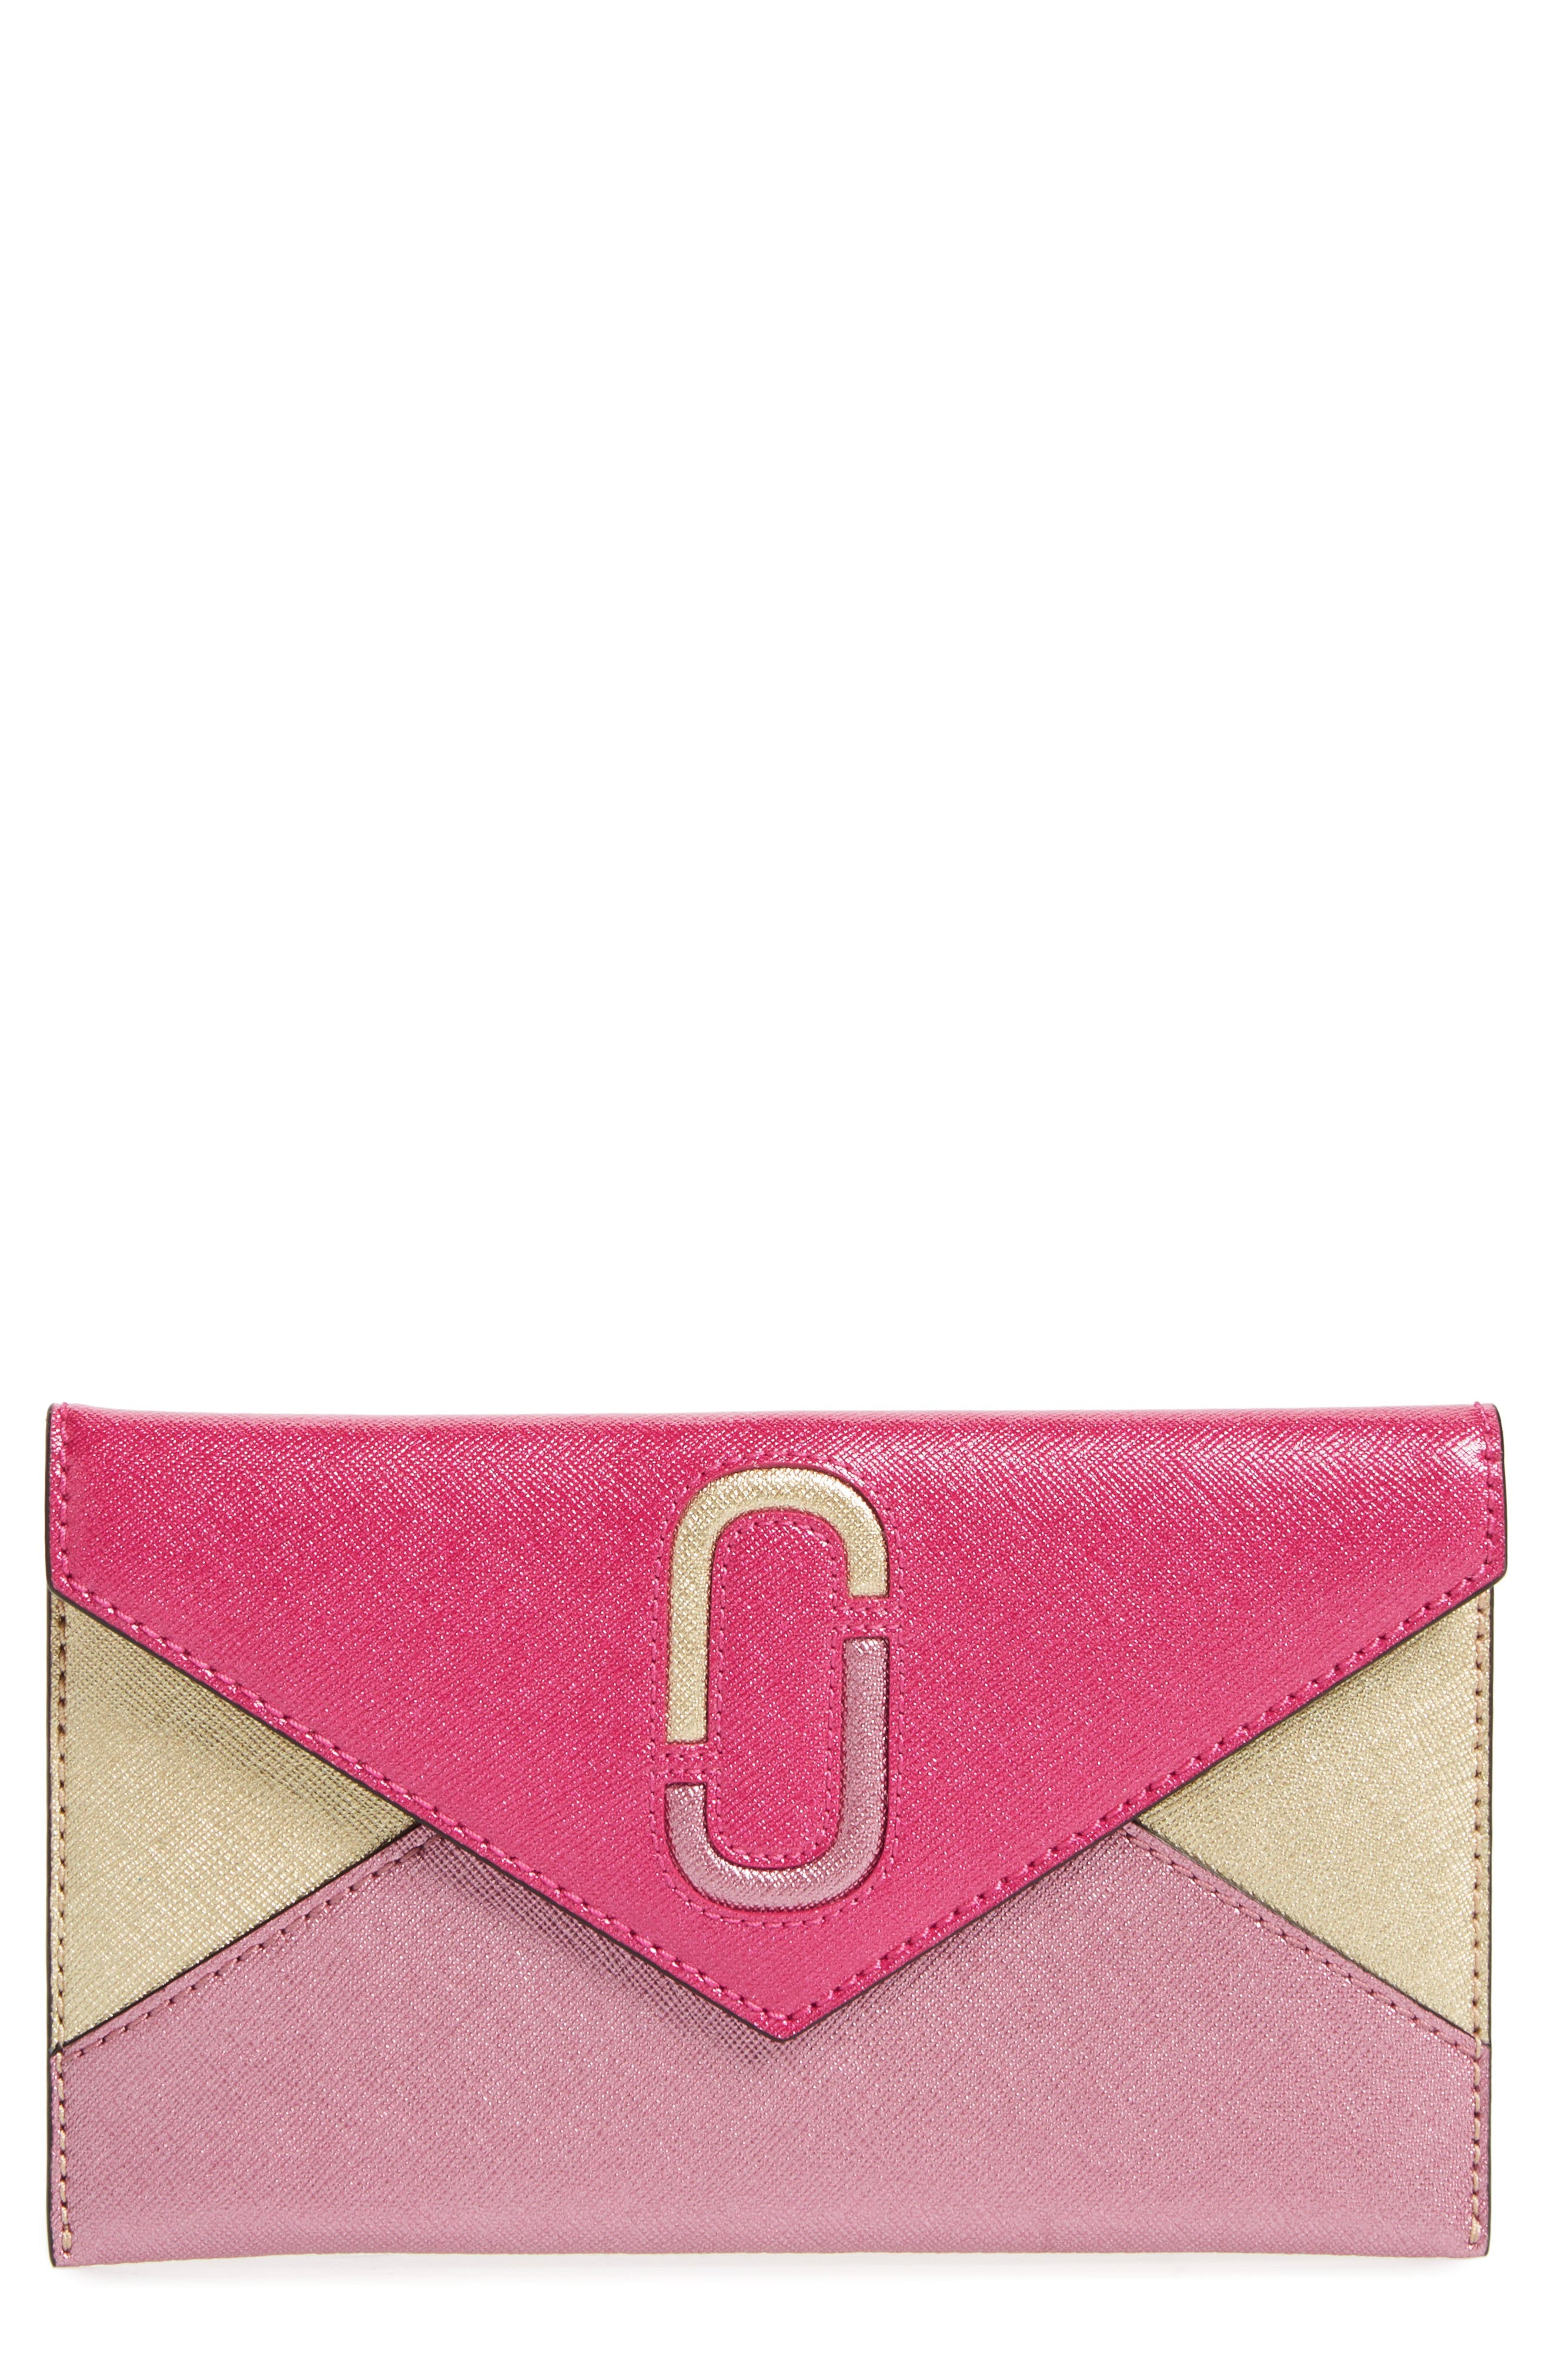 Alternate Image 1 Selected - MARC JACOBS Double-J Saffiano Leather Pouch